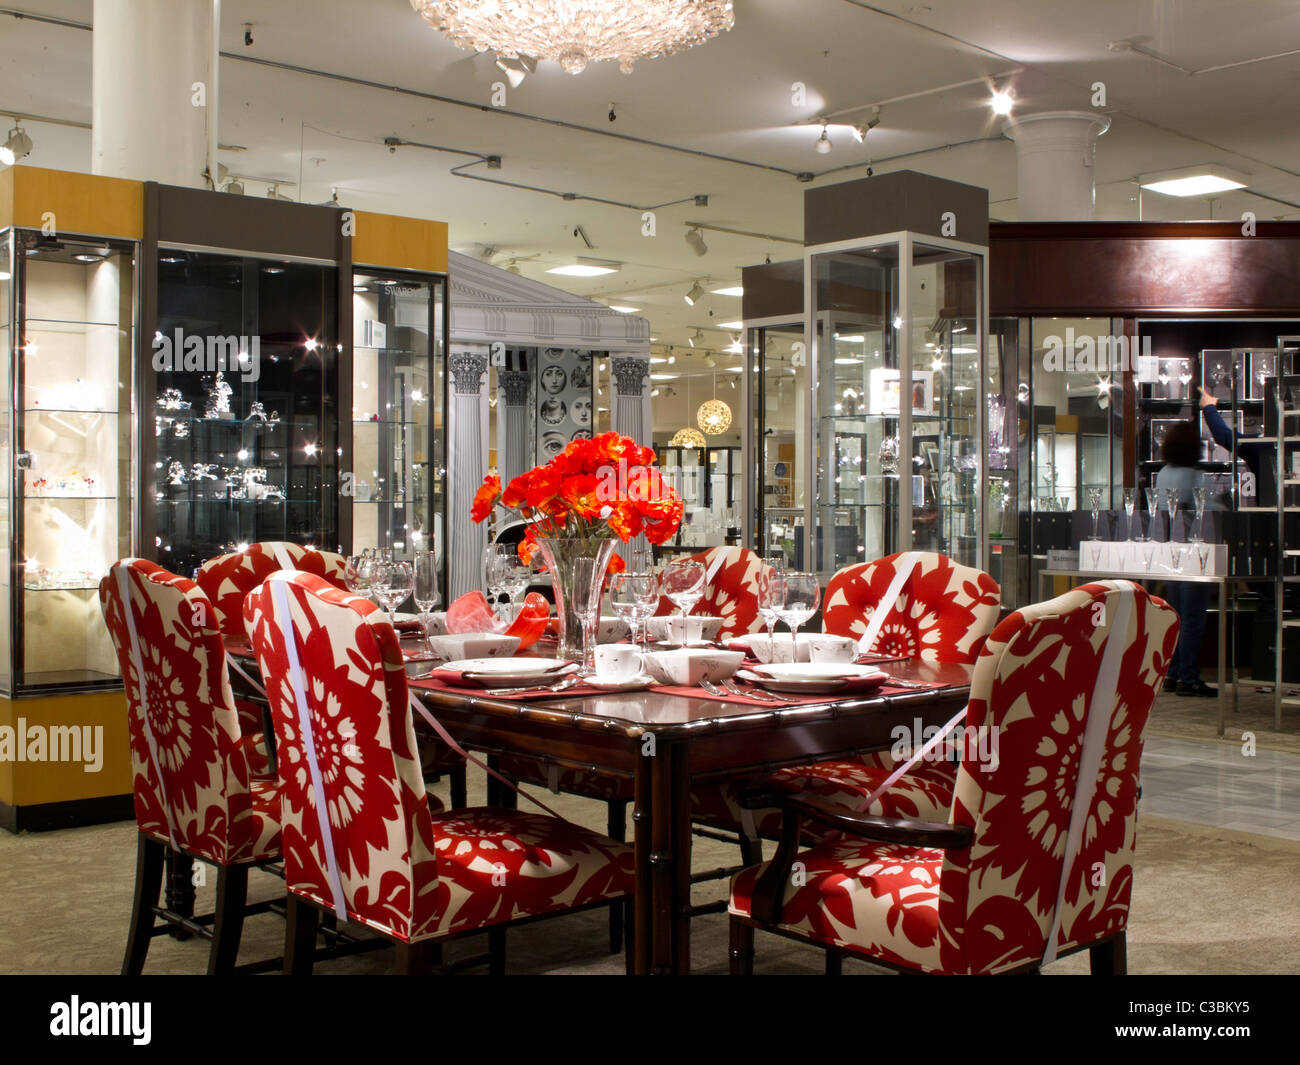 Macys Retail Furniture High Resolution Stock Photography and